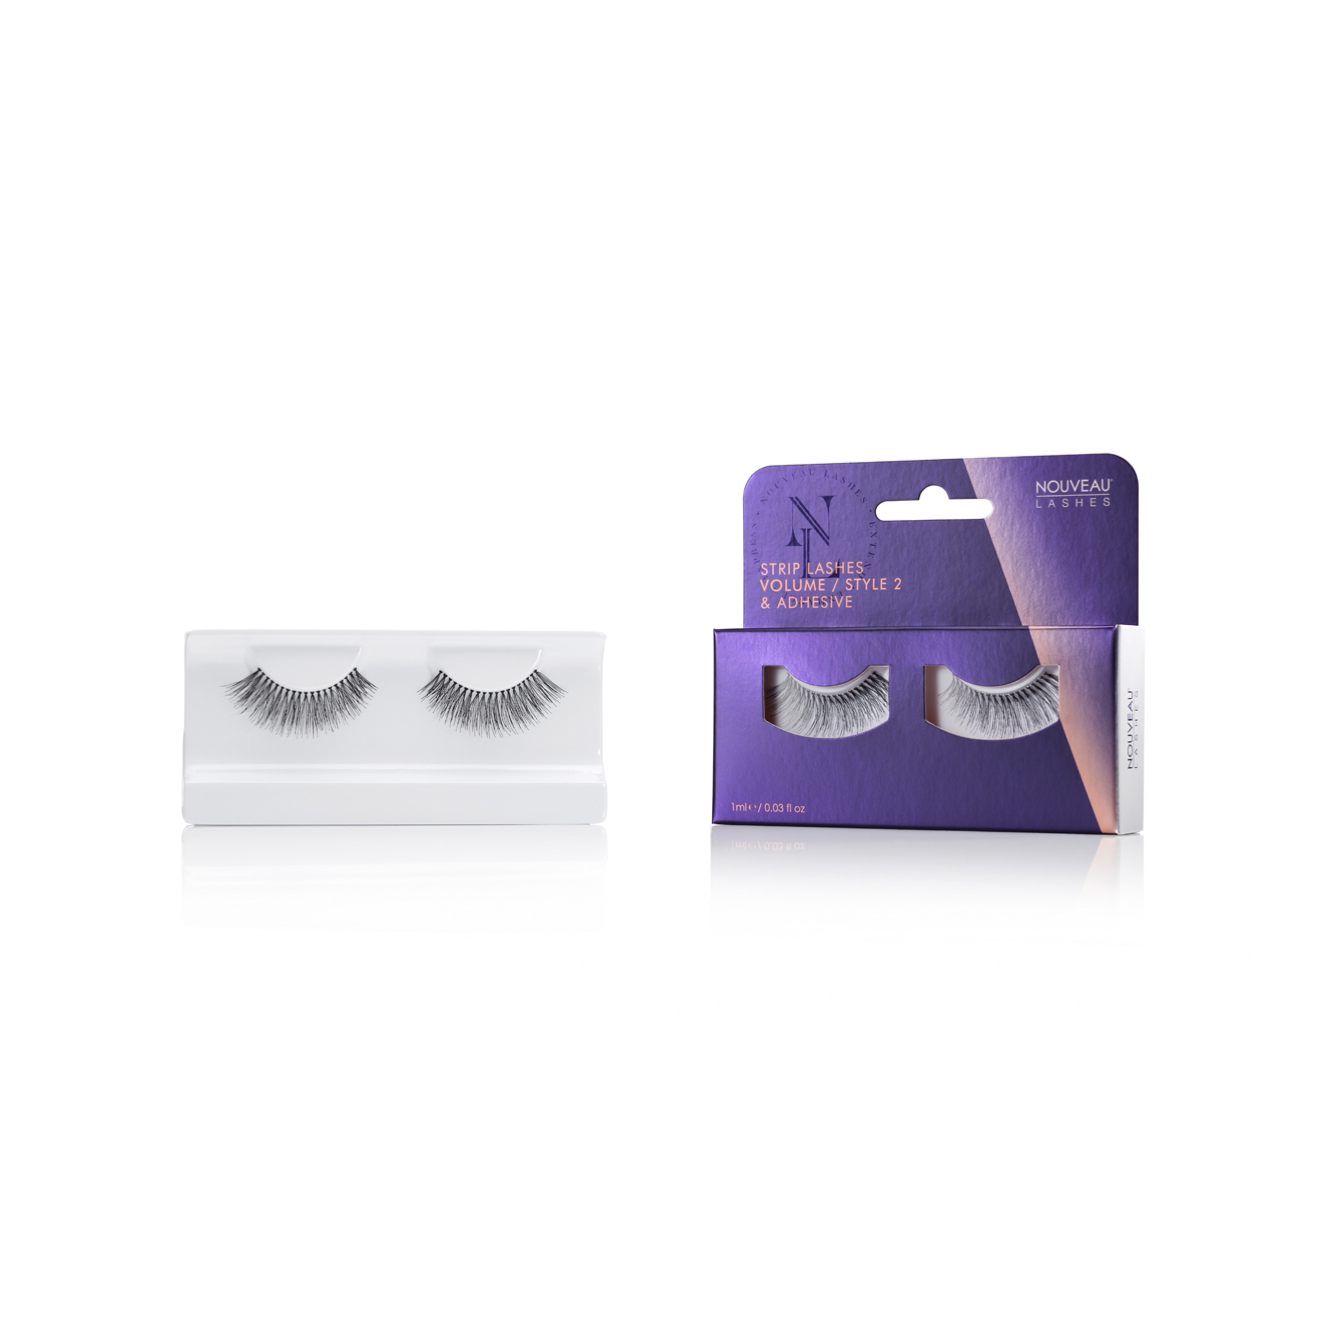 Nouveau Strip Lashes Volume Style 2